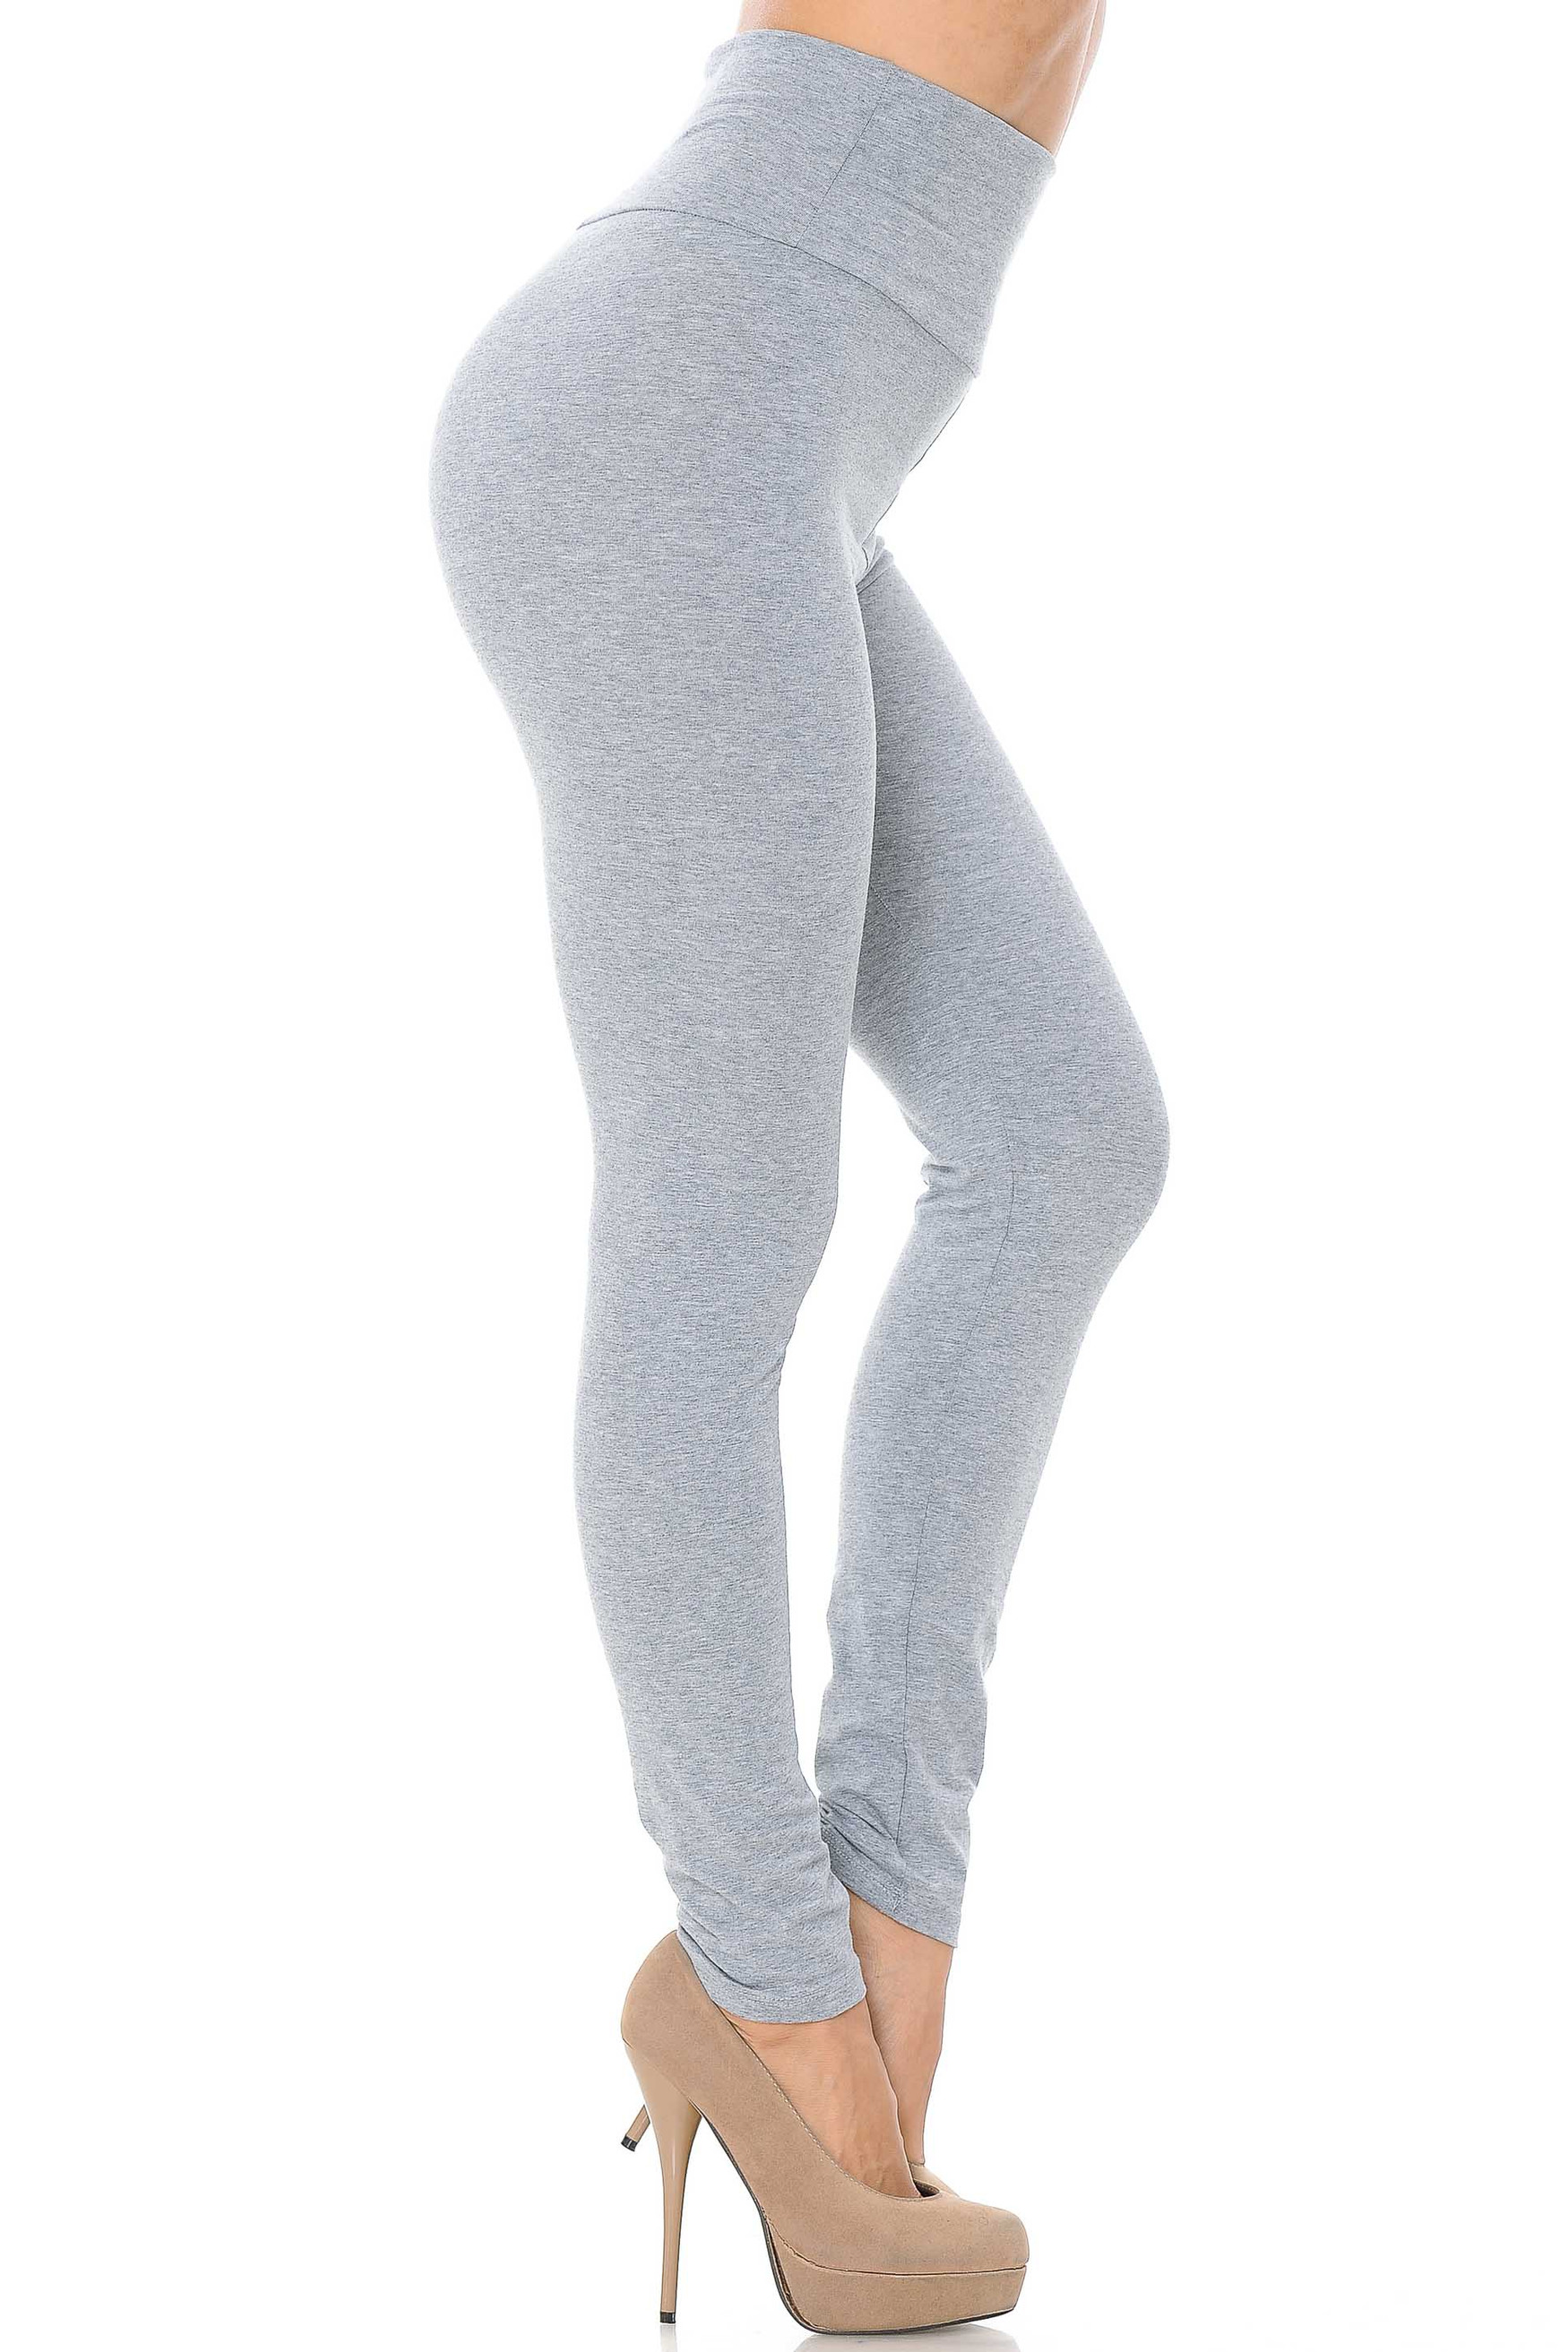 Heather Grey USA High Waisted Cotton Leggings Right Side